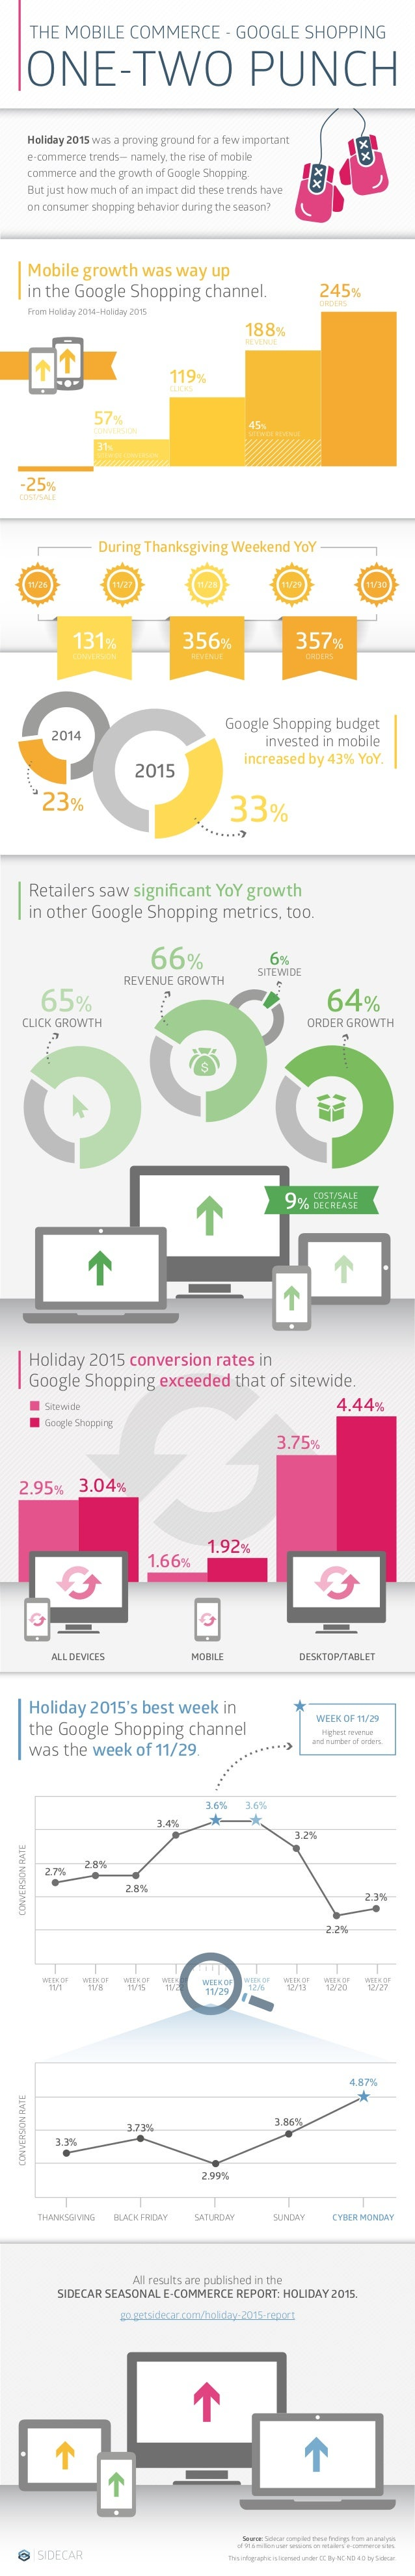 66% 3.75% 2014 4.44% 1.66% 1.92% 2.95% 3.04% REVENUE GROWTH 65% CLICK GROWTH 6% SITEWIDE Holiday 2015 conversion rates in ...